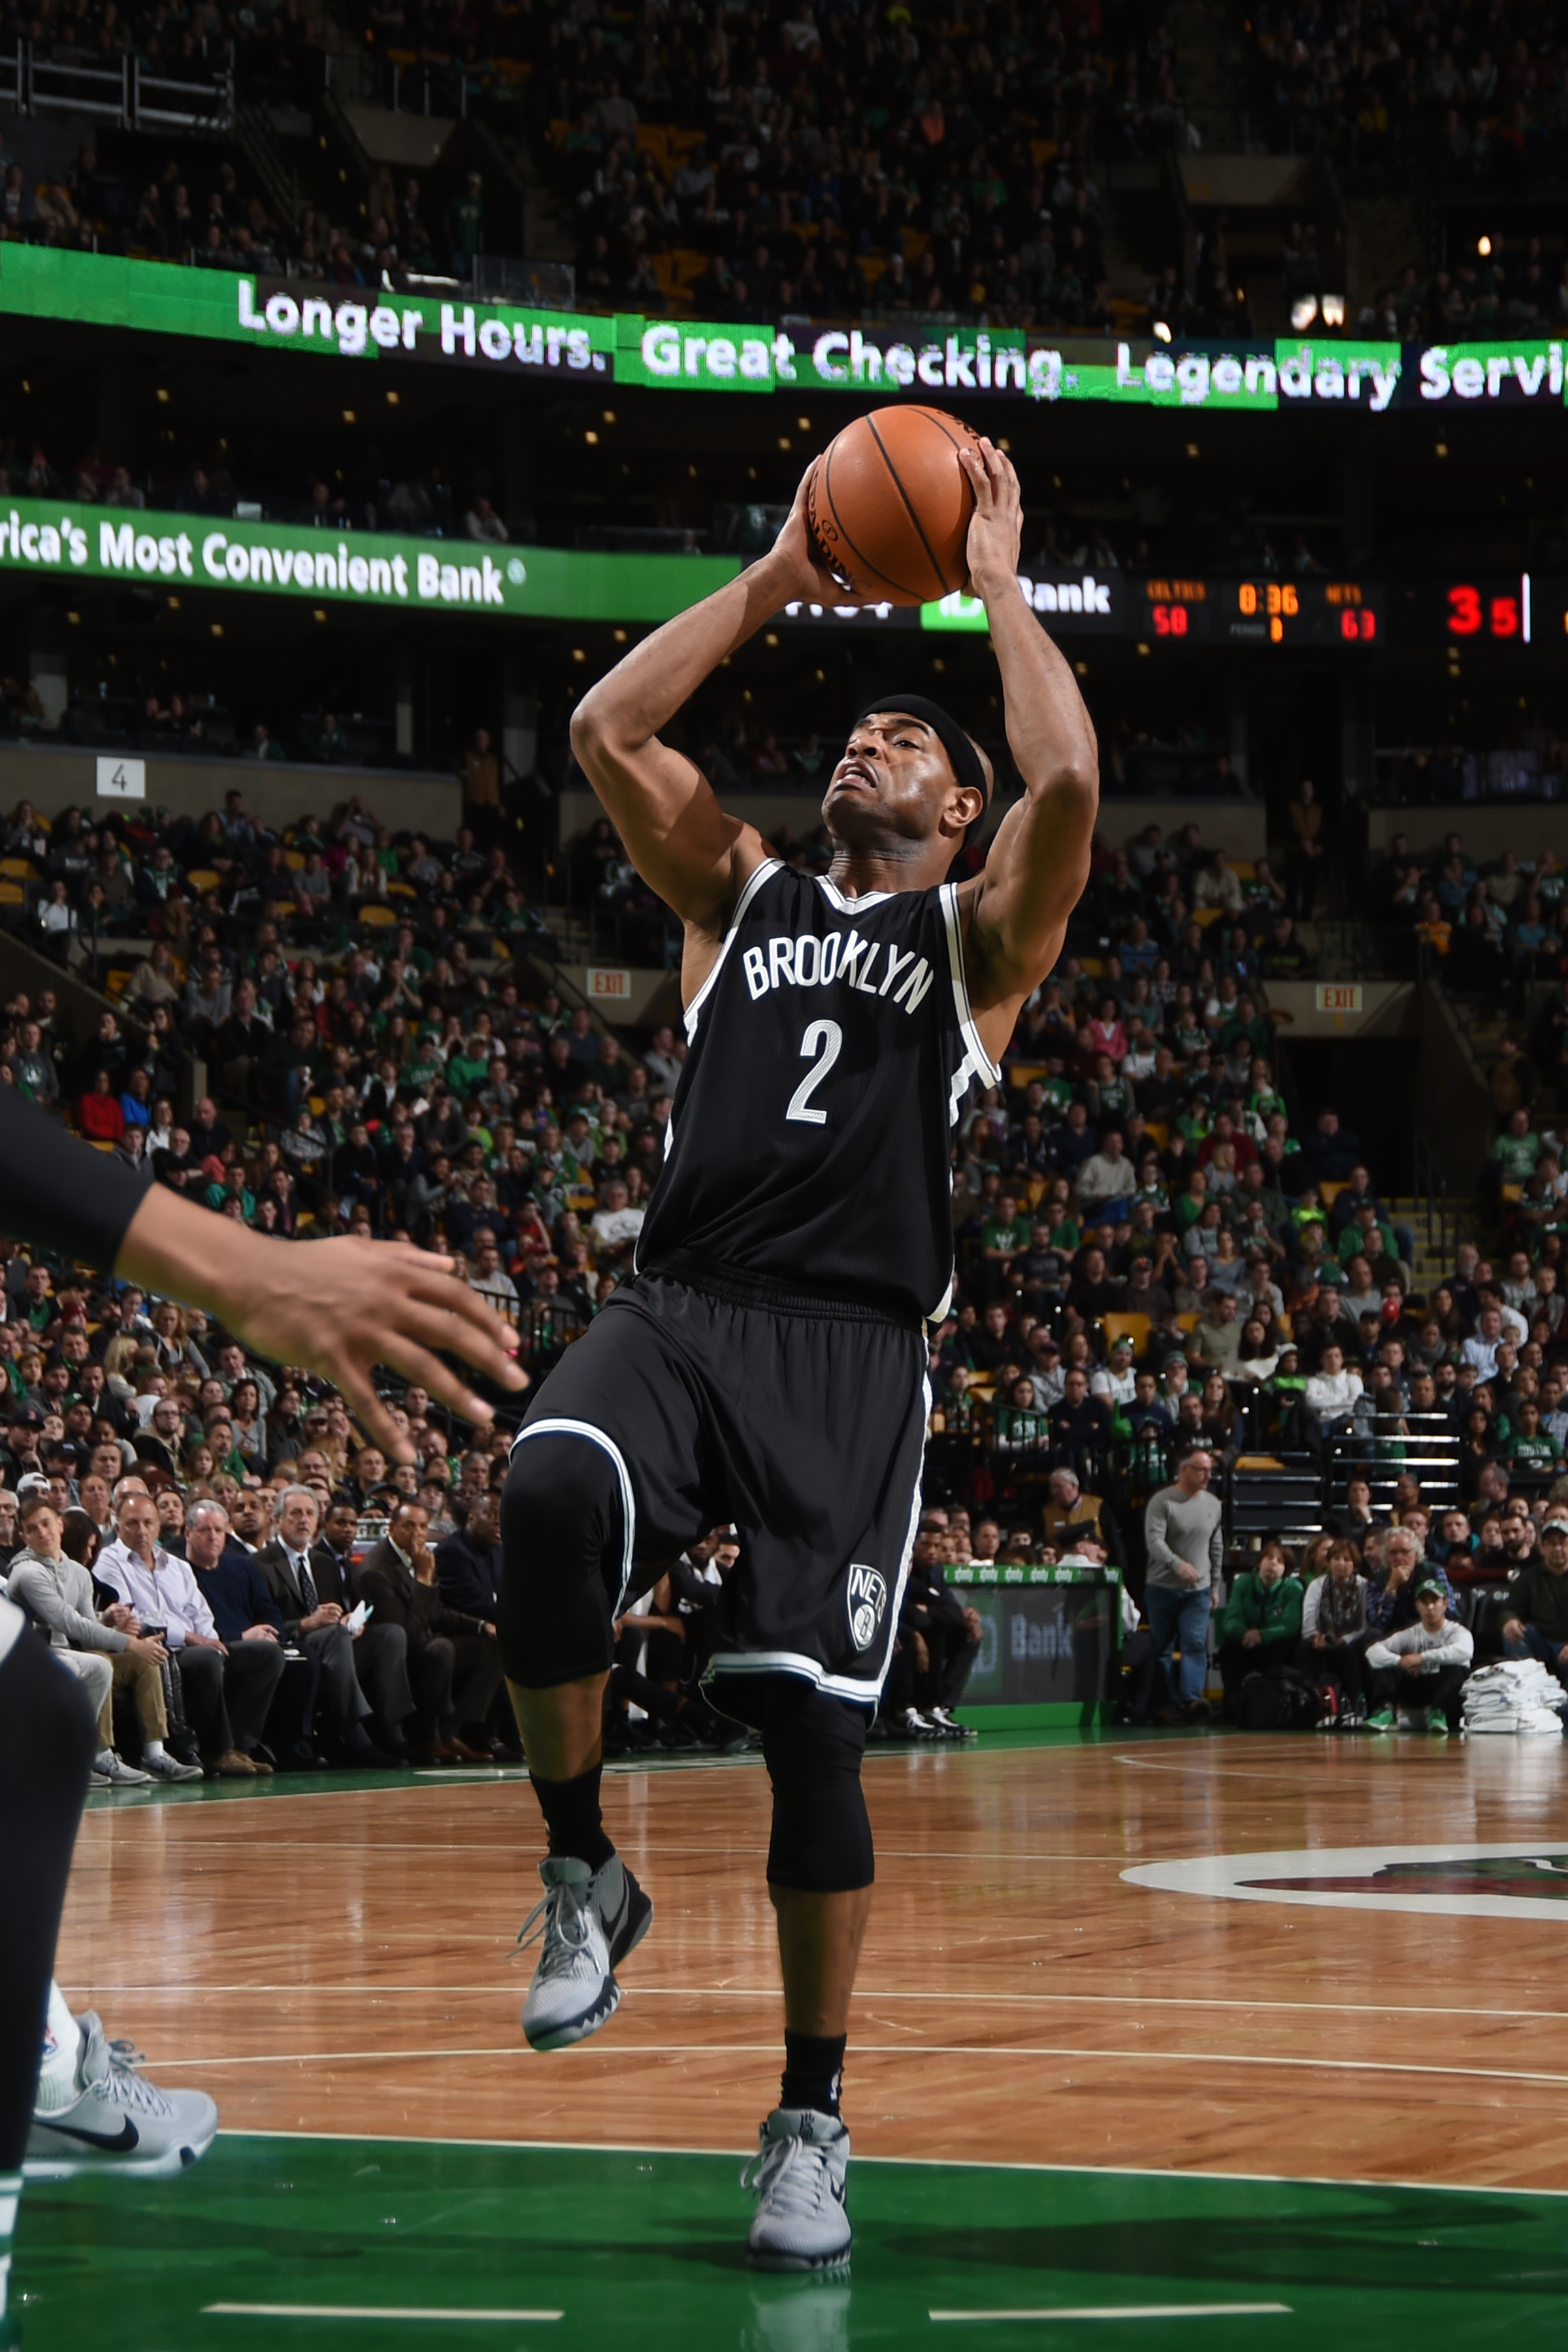 BOSTON, MA - JANUARY 2:  Jarrett Jack #2 of the Brooklyn Nets shoots the ball against the Boston Celtics on January 2, 2016 at the TD Garden in Boston, Massachusetts.  (Photo by Brian Babineau/NBAE via Getty Images)